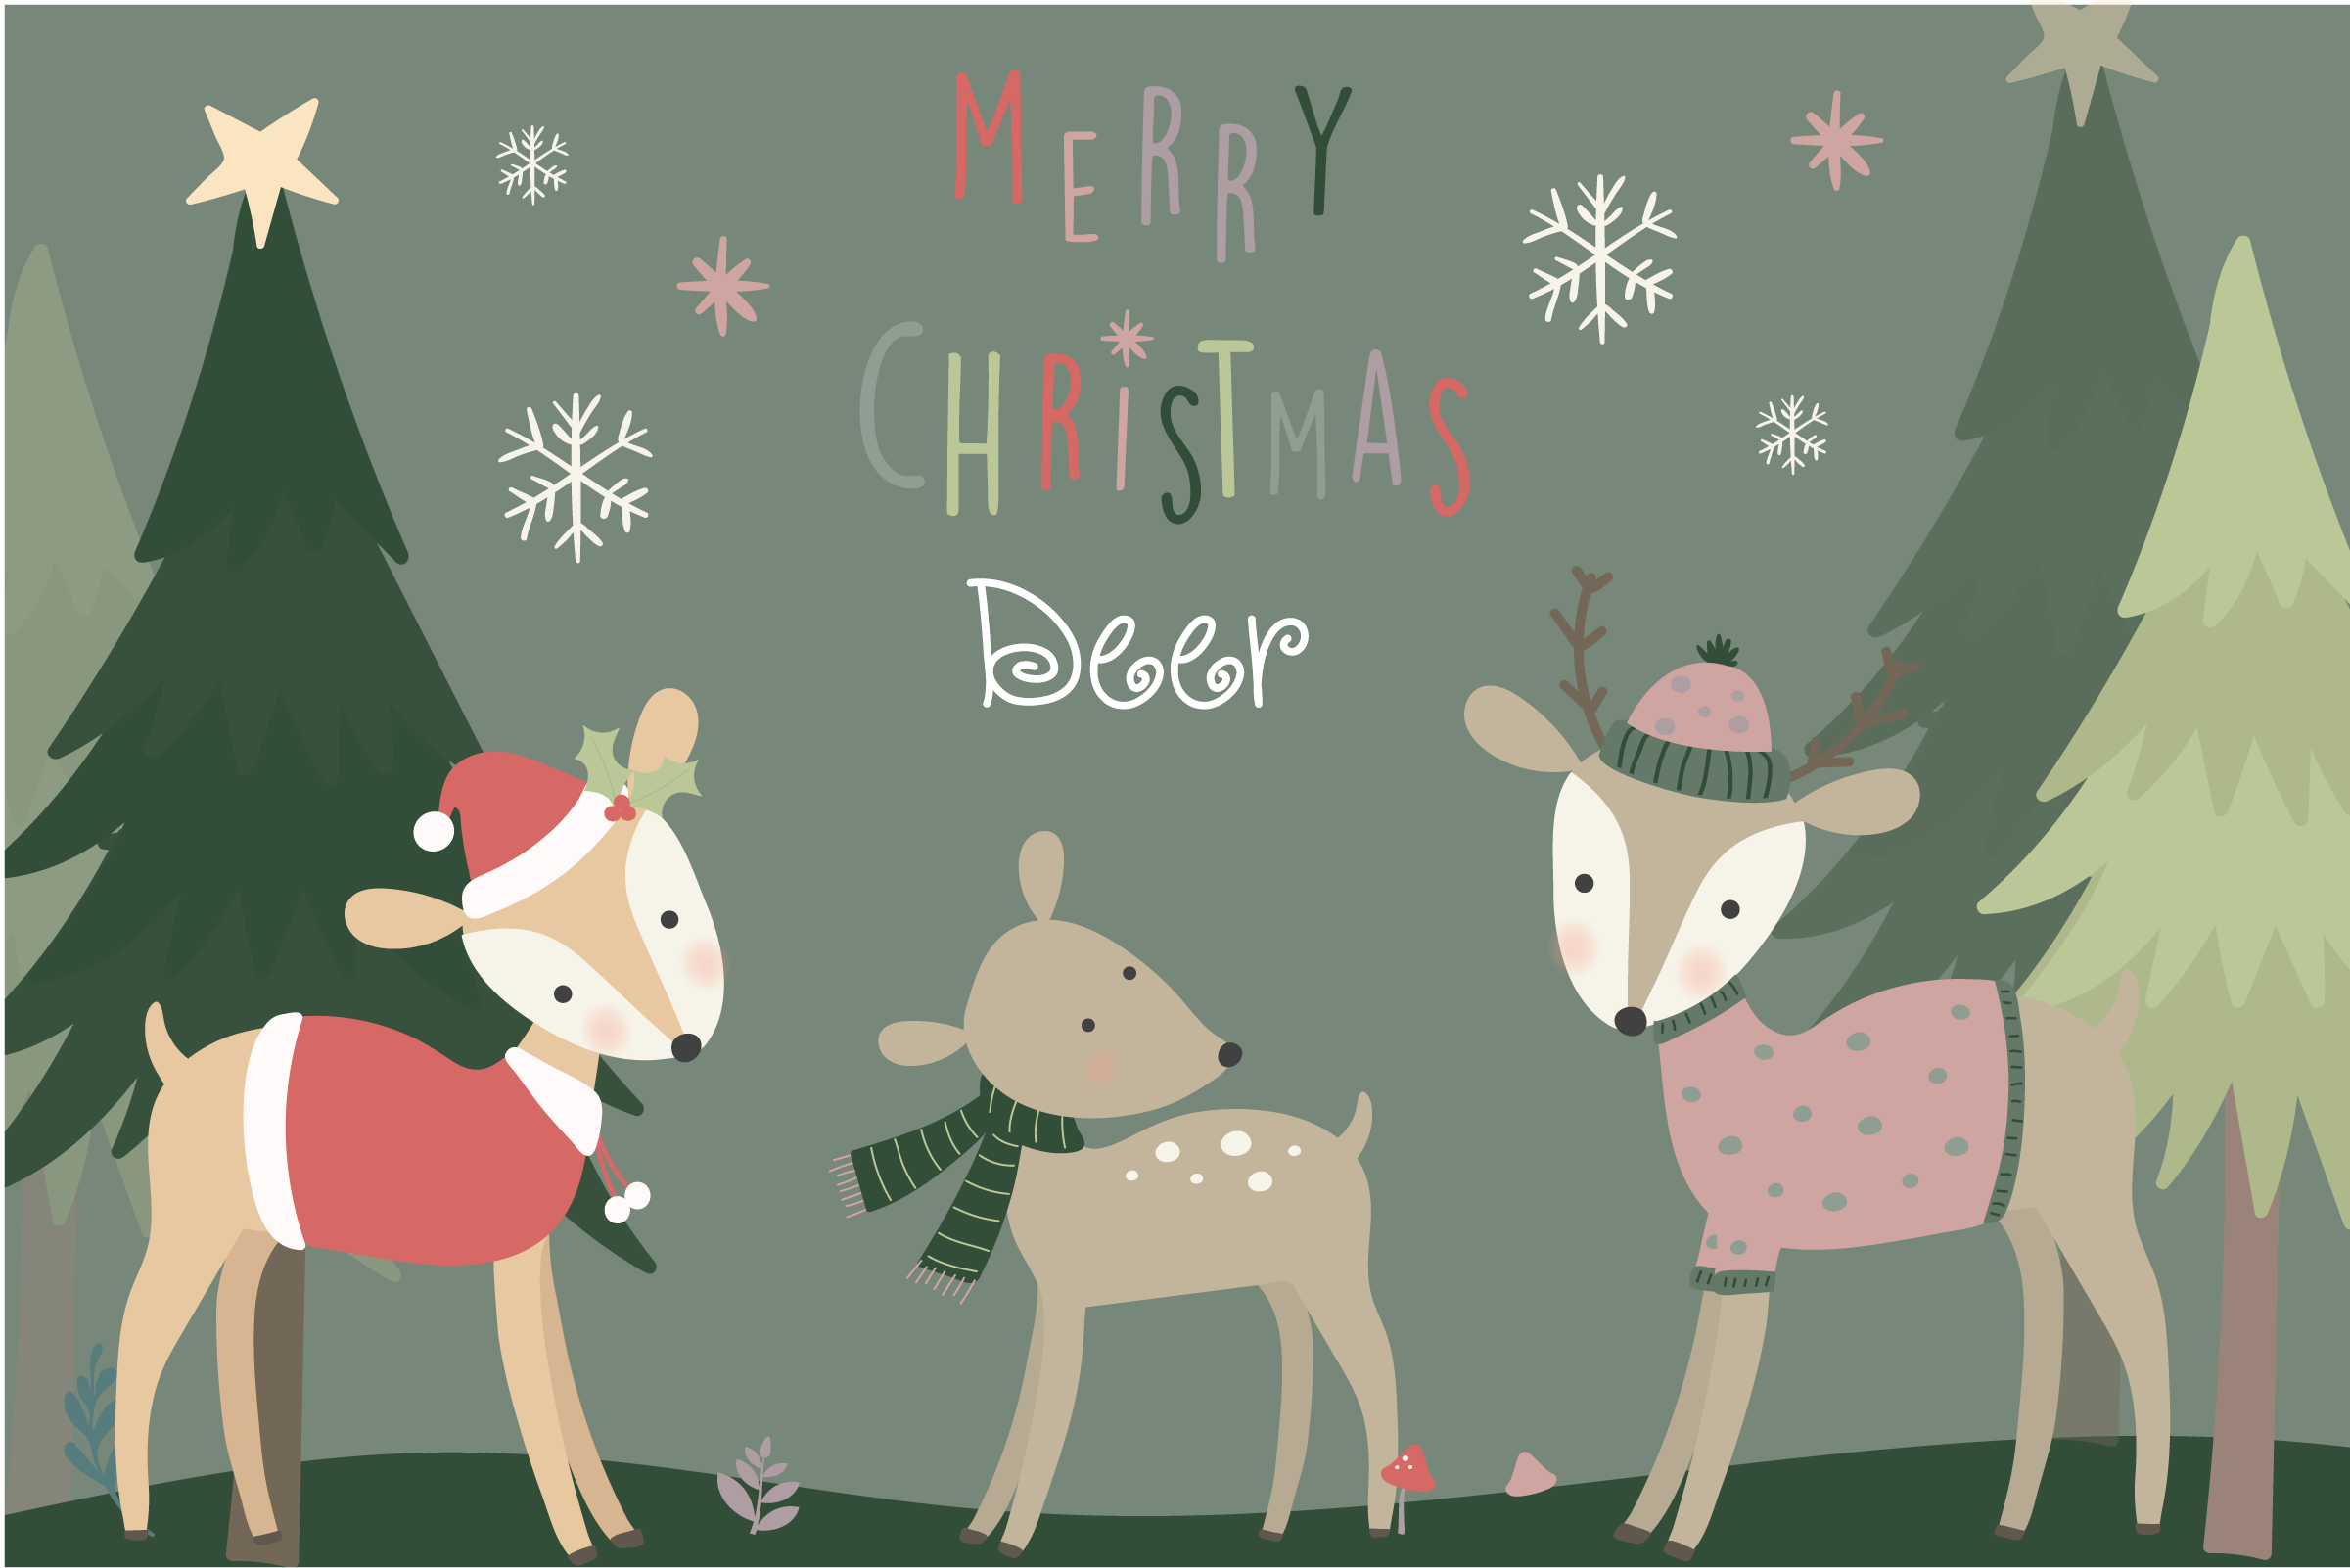 Merry Christmas Deer By Poppymoon Design Thehungryjpeg Com